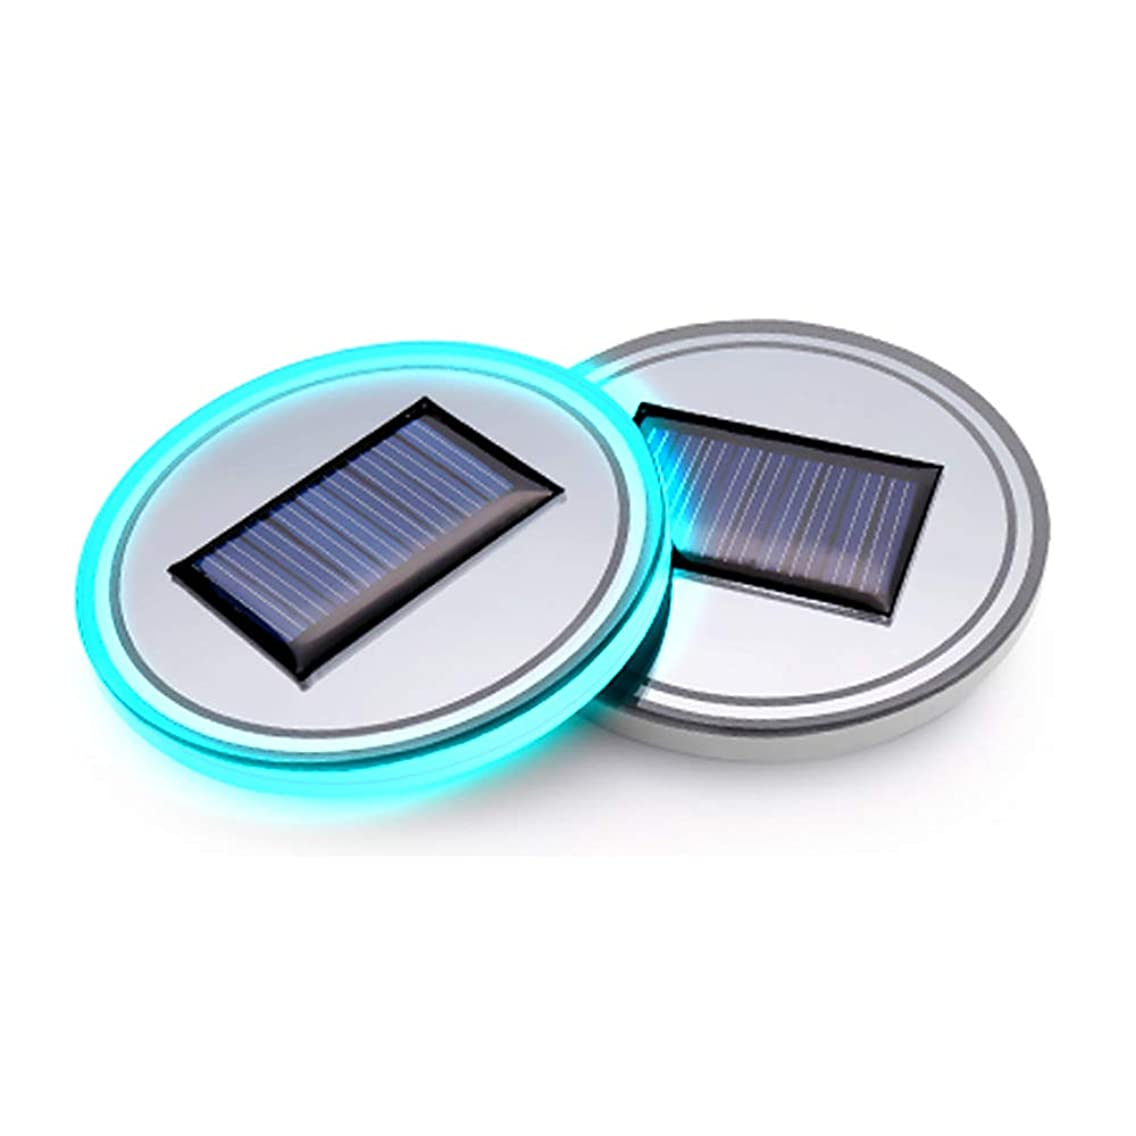 (Pack of 1) Solar Energy LED Car Cup Holder Bottom Pad Mat Interior Lights Fitment Trim Lighting for Mitsubishi Pajero Sport Fortis Mirage lancerevo Lancer Eclipse Outlander Galant ASX Accessories